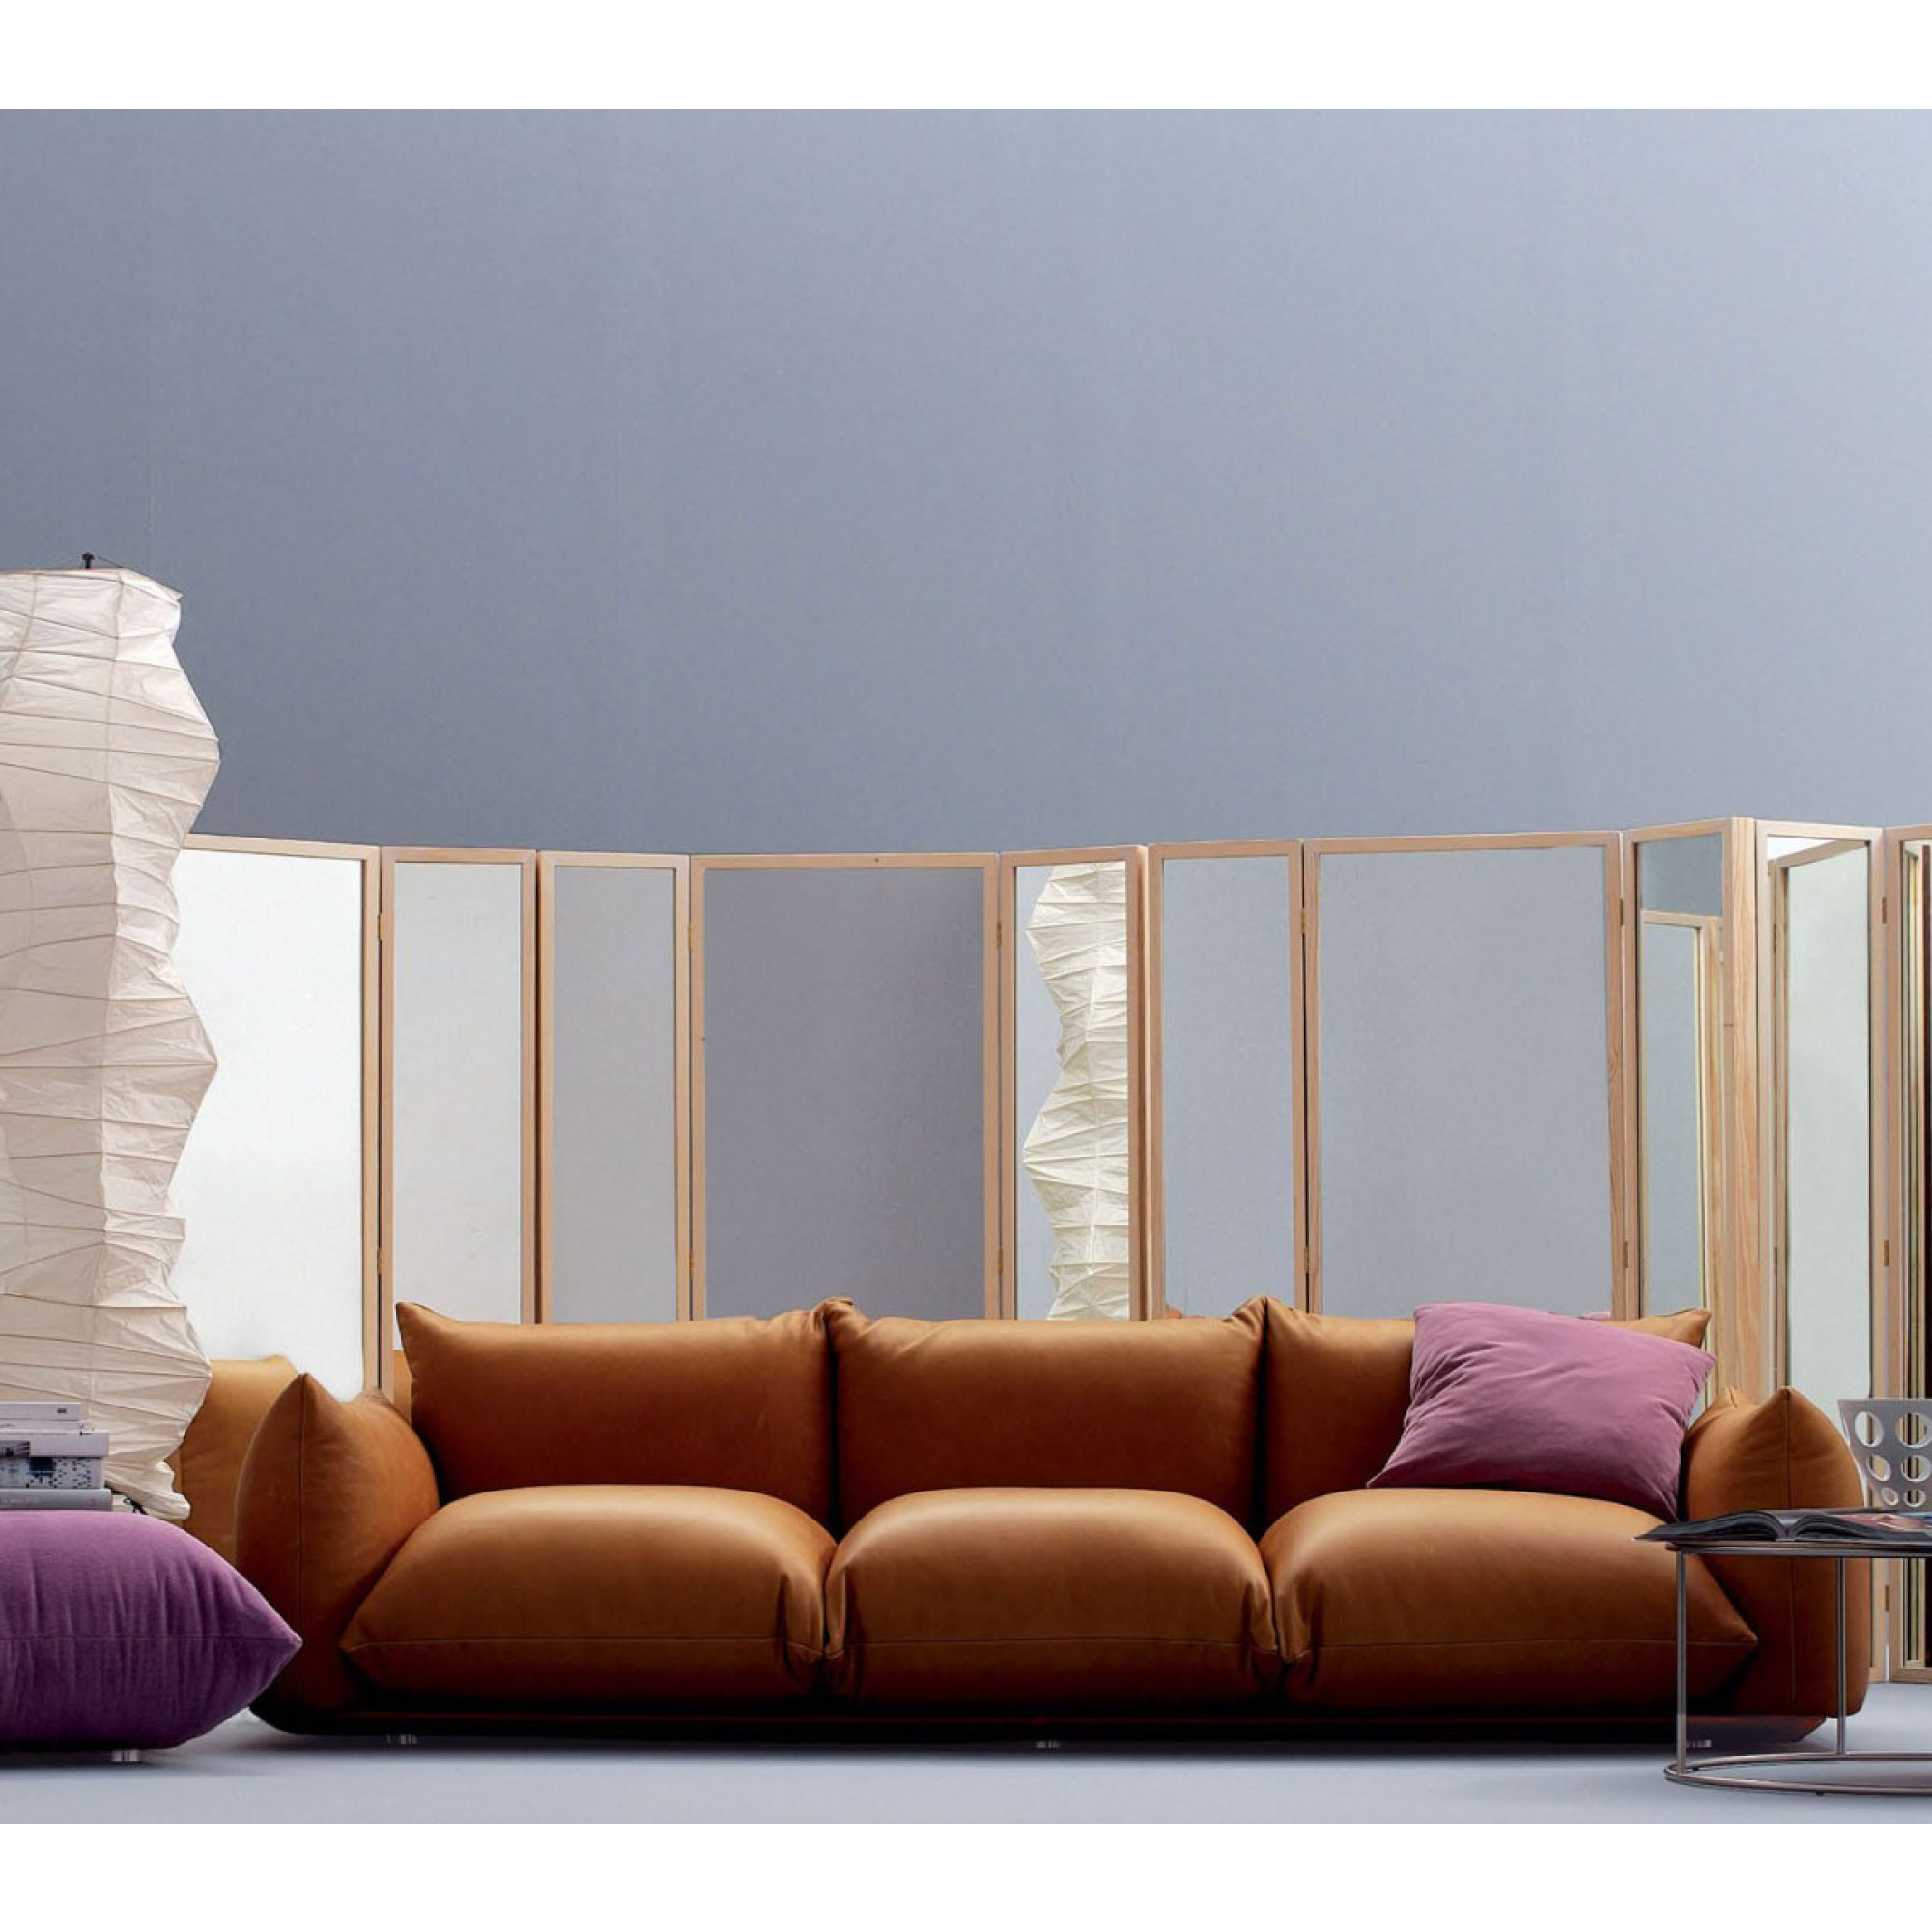 Marenco Sofa By Arflex Luxury Interior Design Online Shop